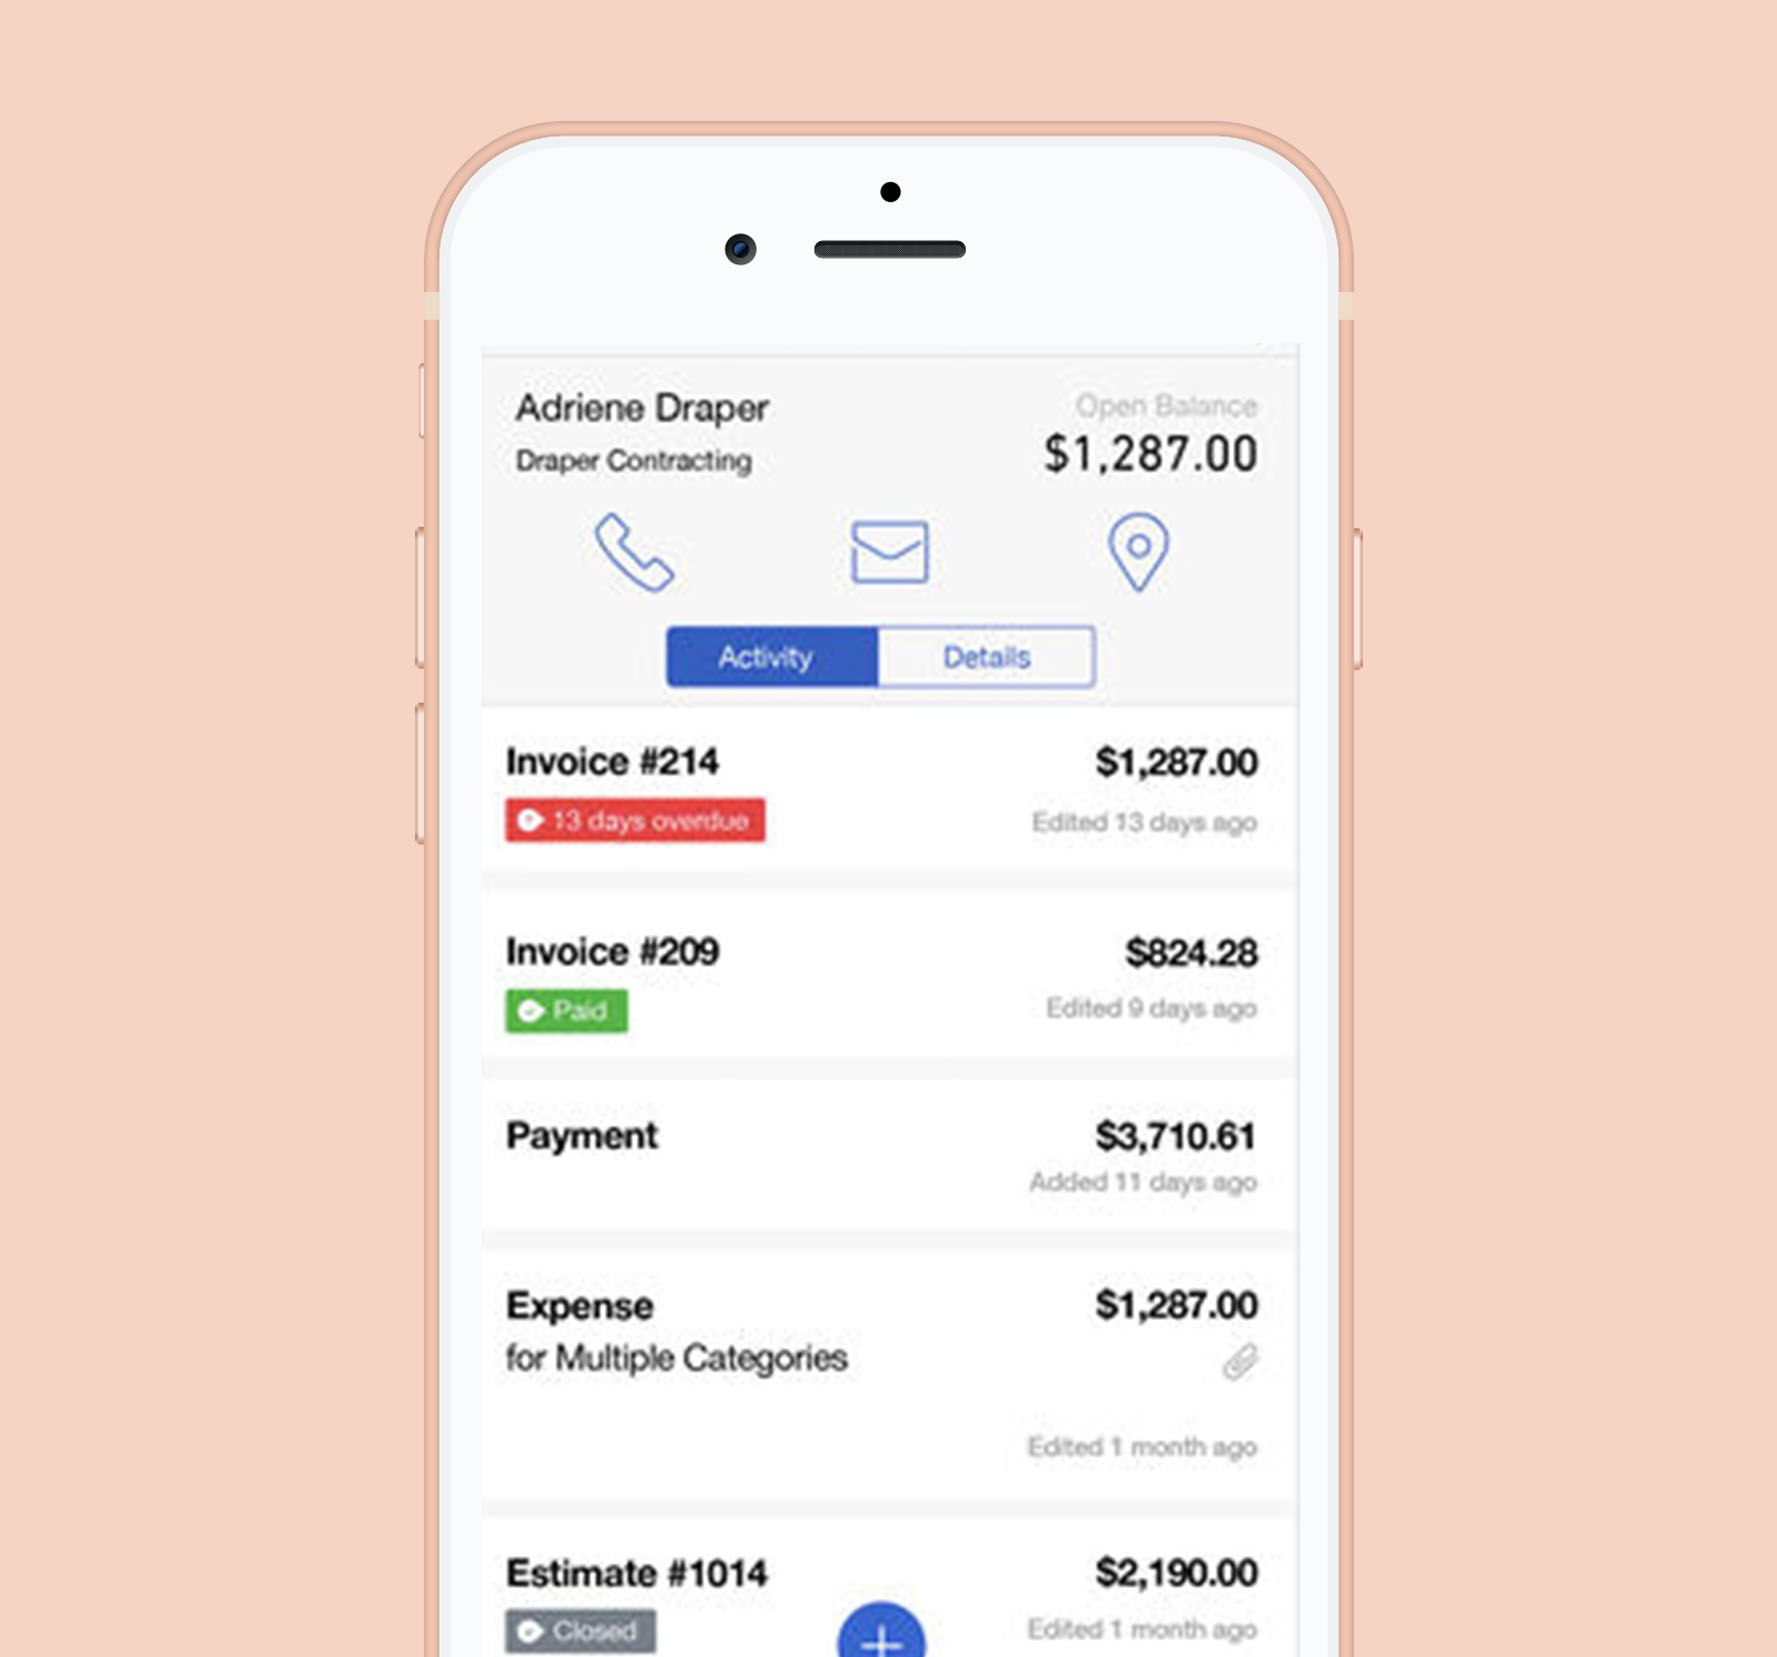 Kitchen Goals Heretomakelifeeasy: 6 Apps That Can Help You Meet Your Savings Goals (With